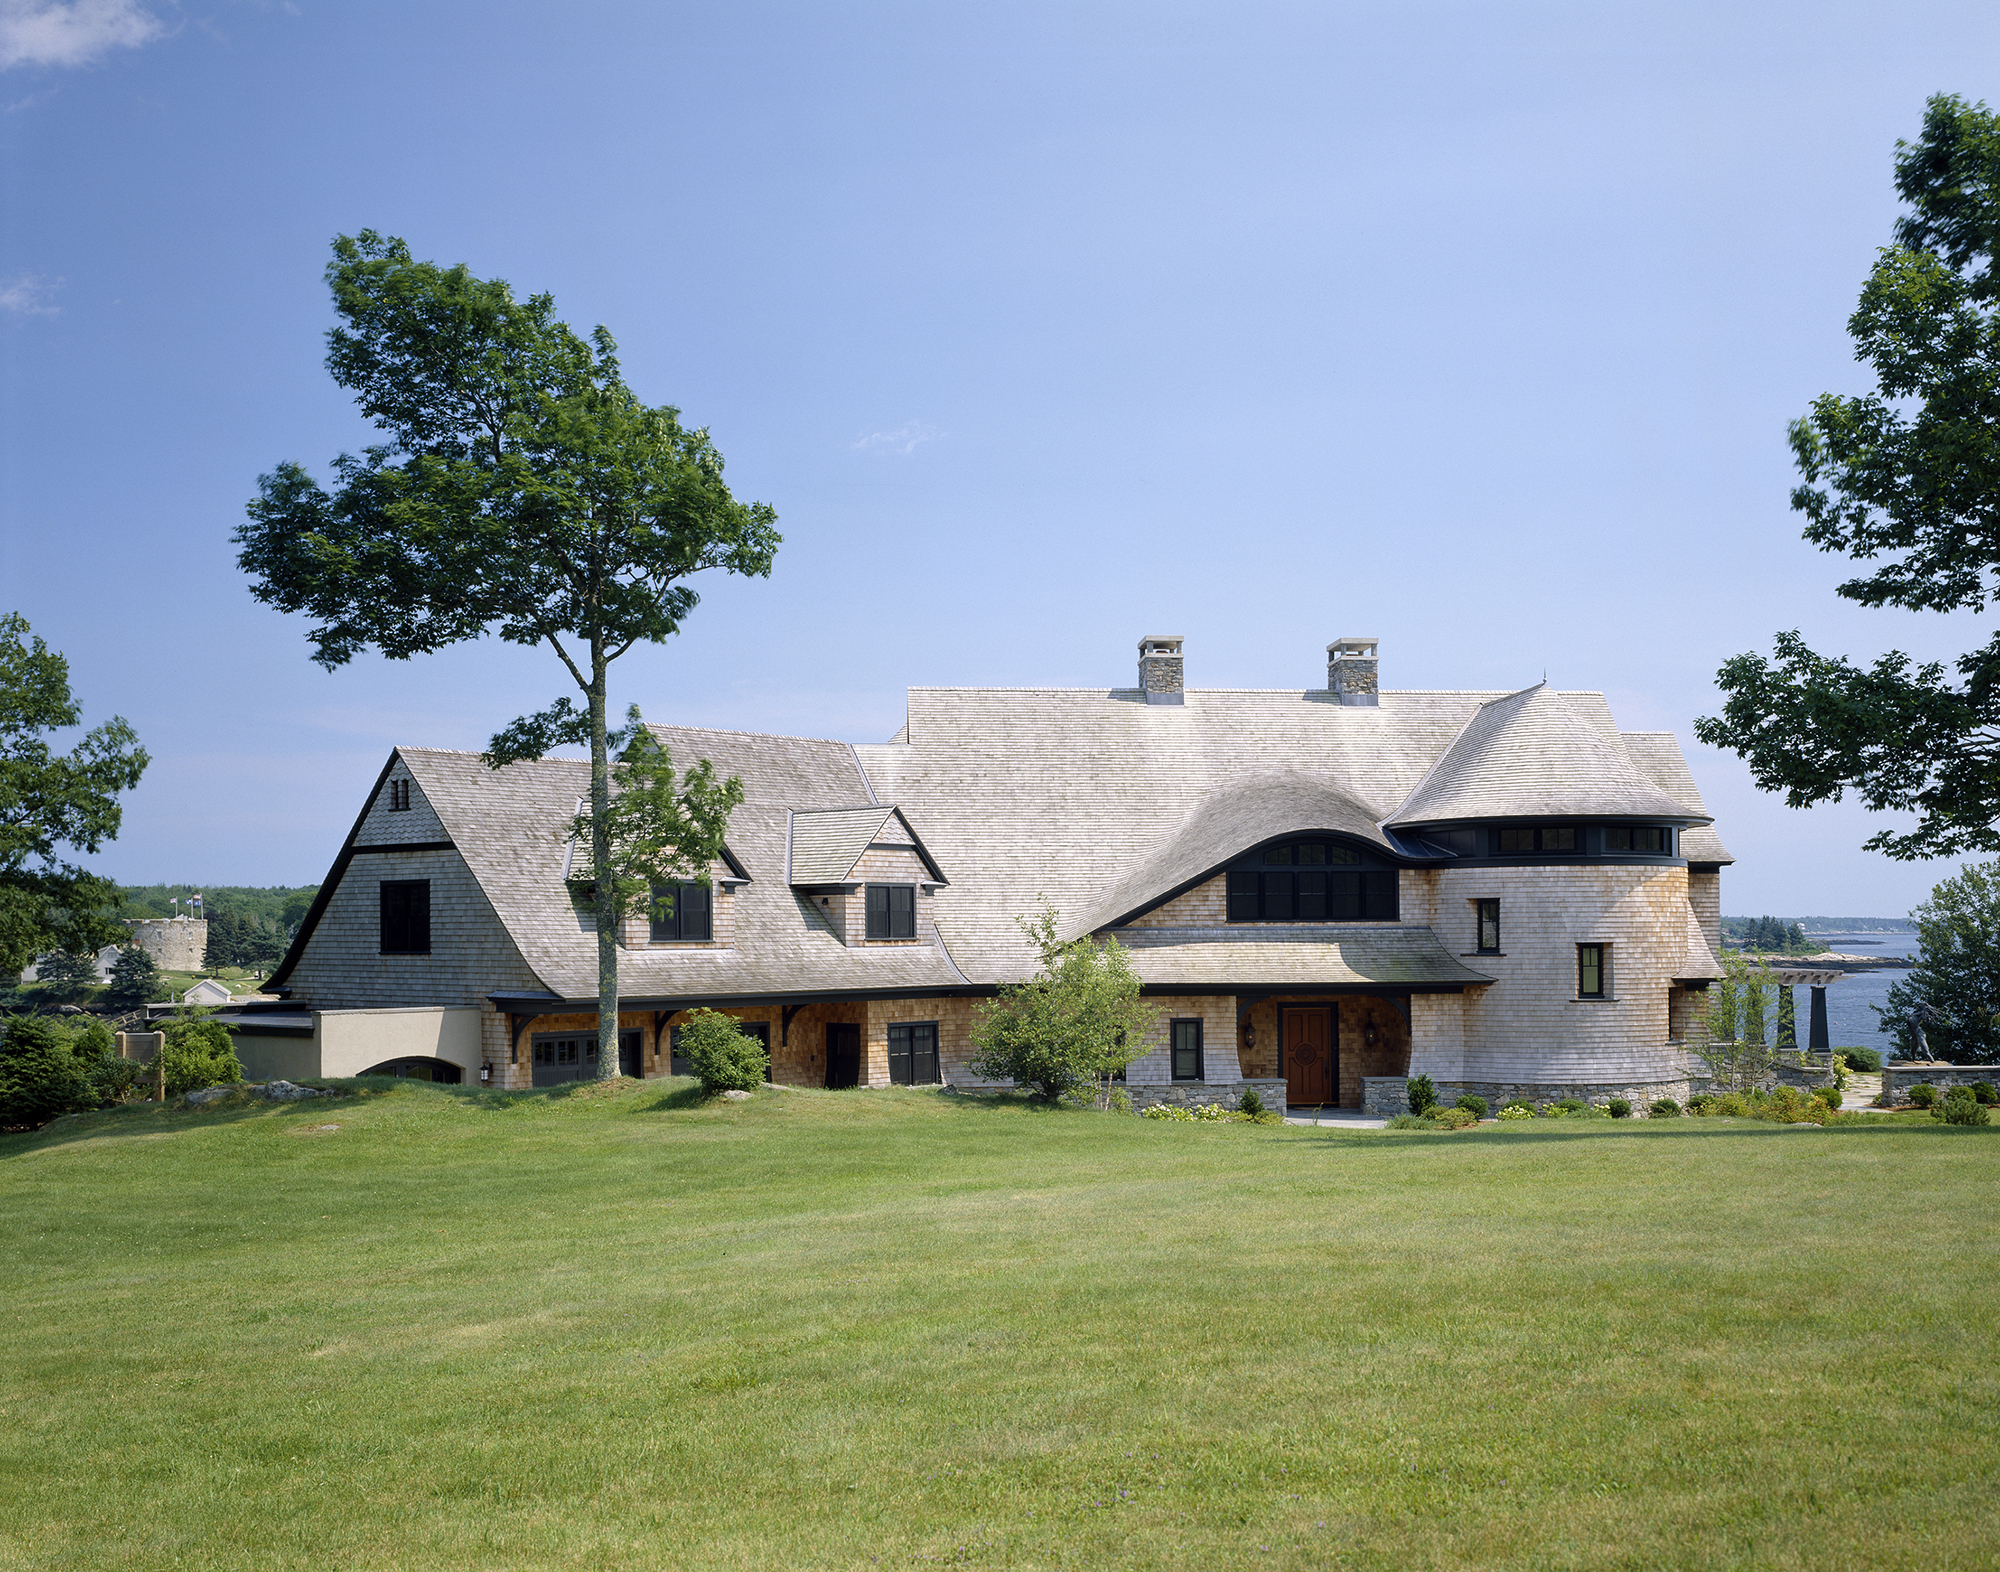 knickerbocker-group-project-barbican-shingle-style-maine-coast